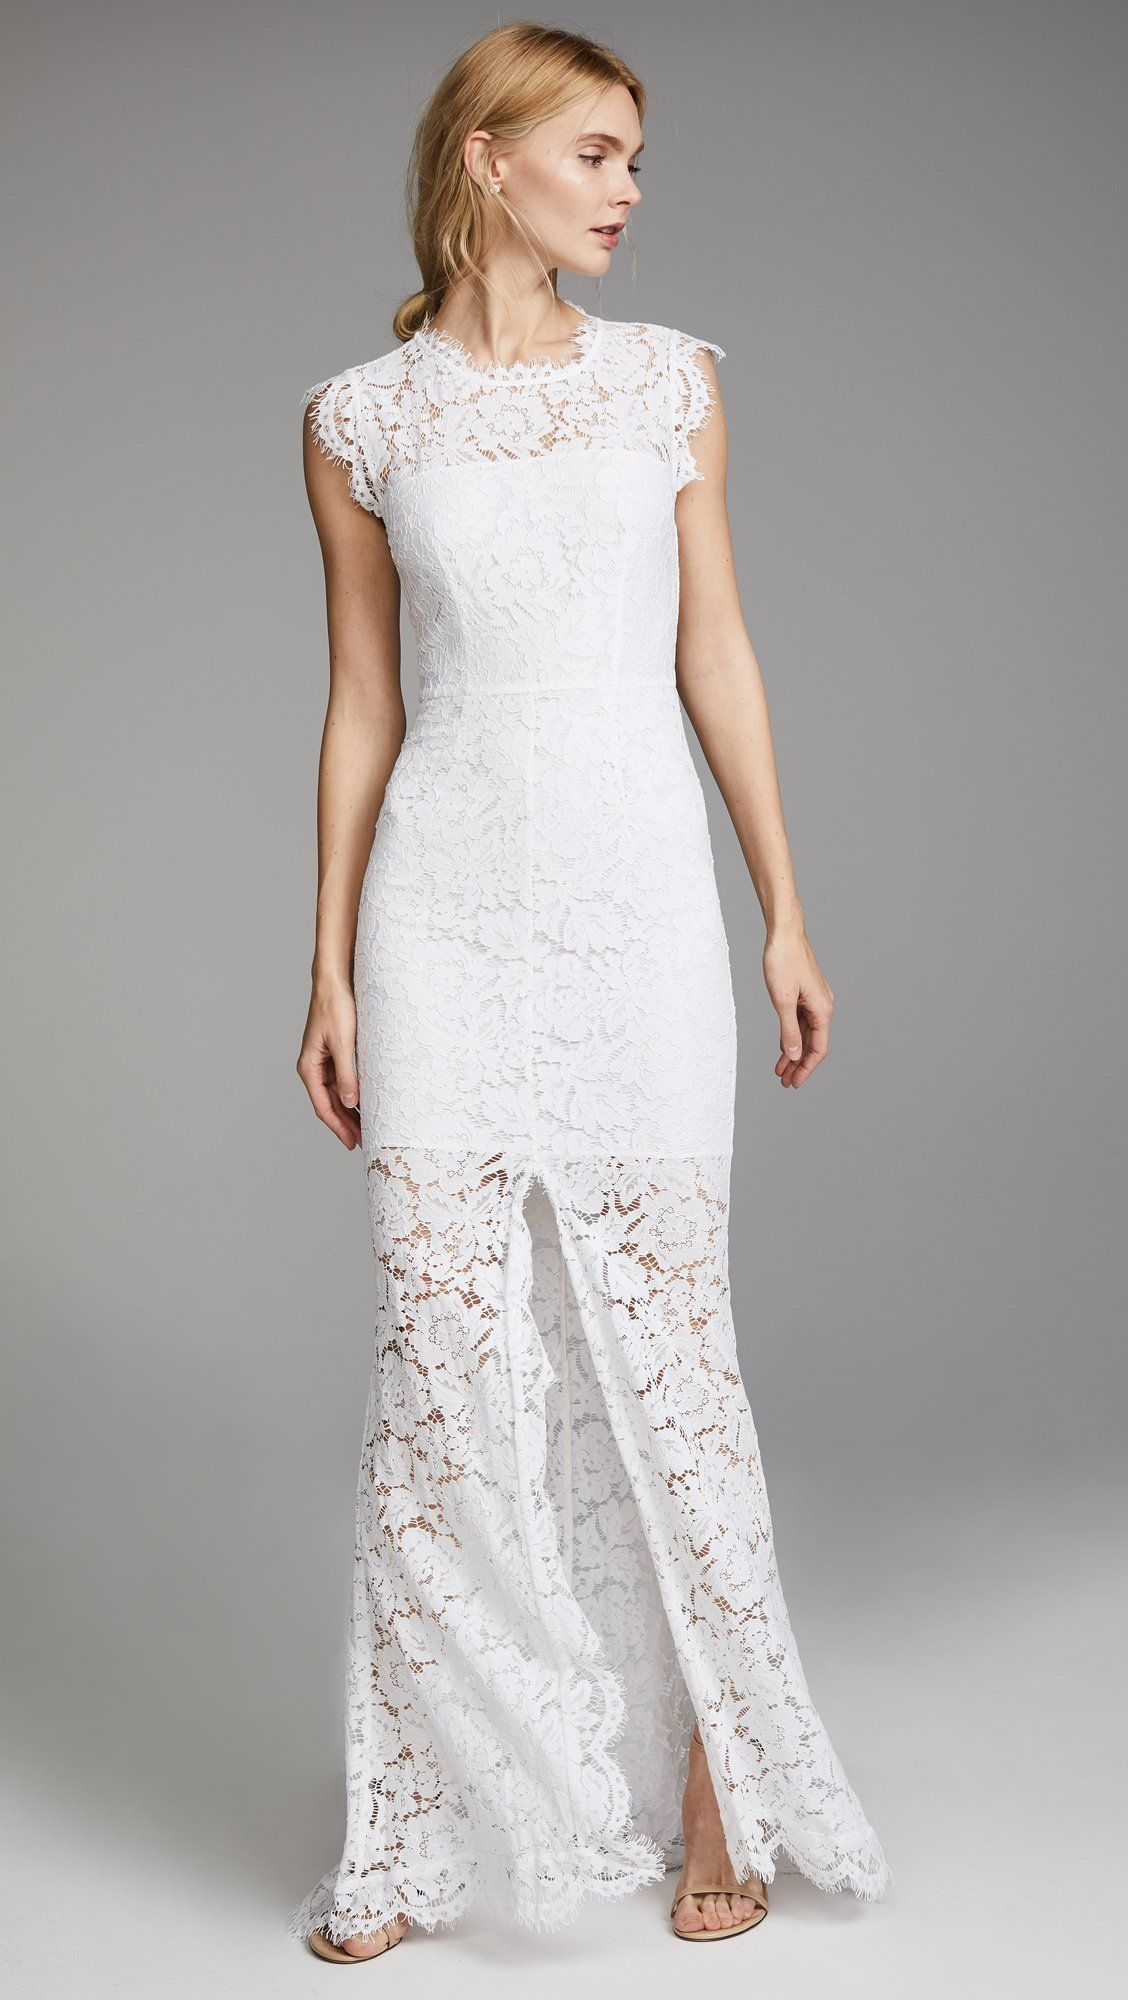 Affordable wedding dresses near me  Calling All Brides on a Budget  of the Dreamiest Wedding Dresses